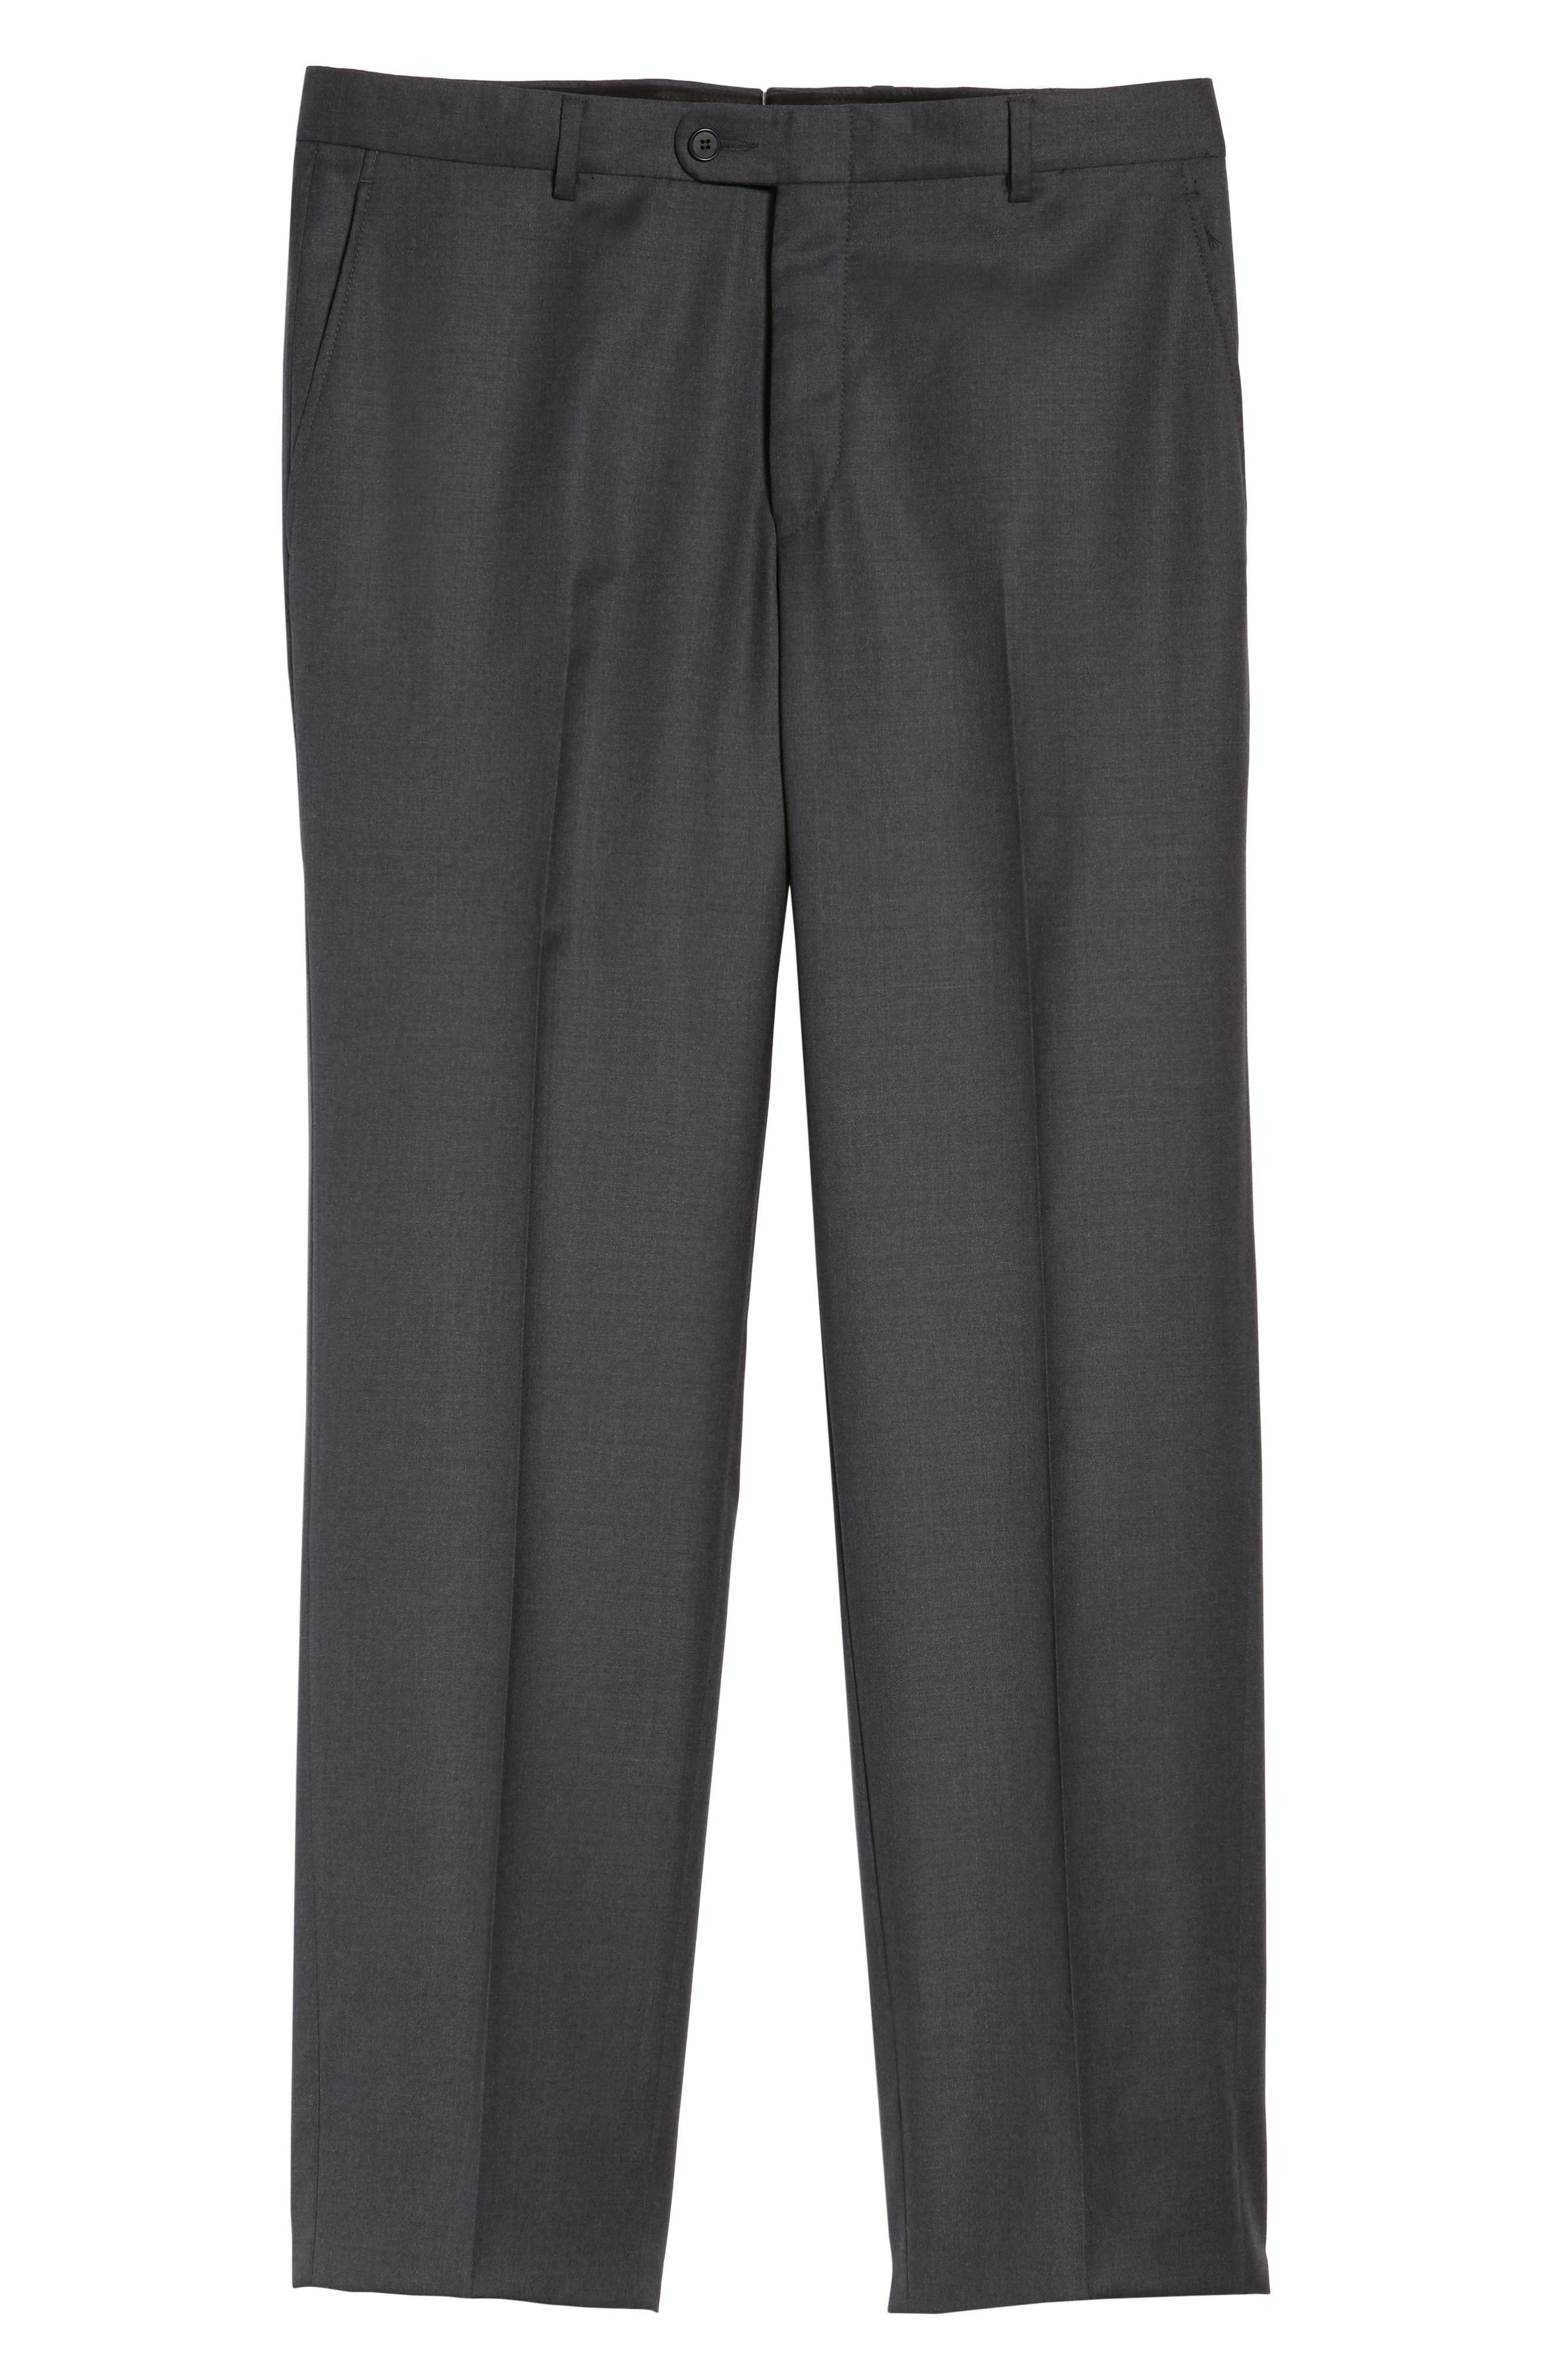 Classic B Fit Flat Front Solid Wool Trousers,                             Alternate thumbnail 6, color,                             CHARCOAL SHARKSKIN